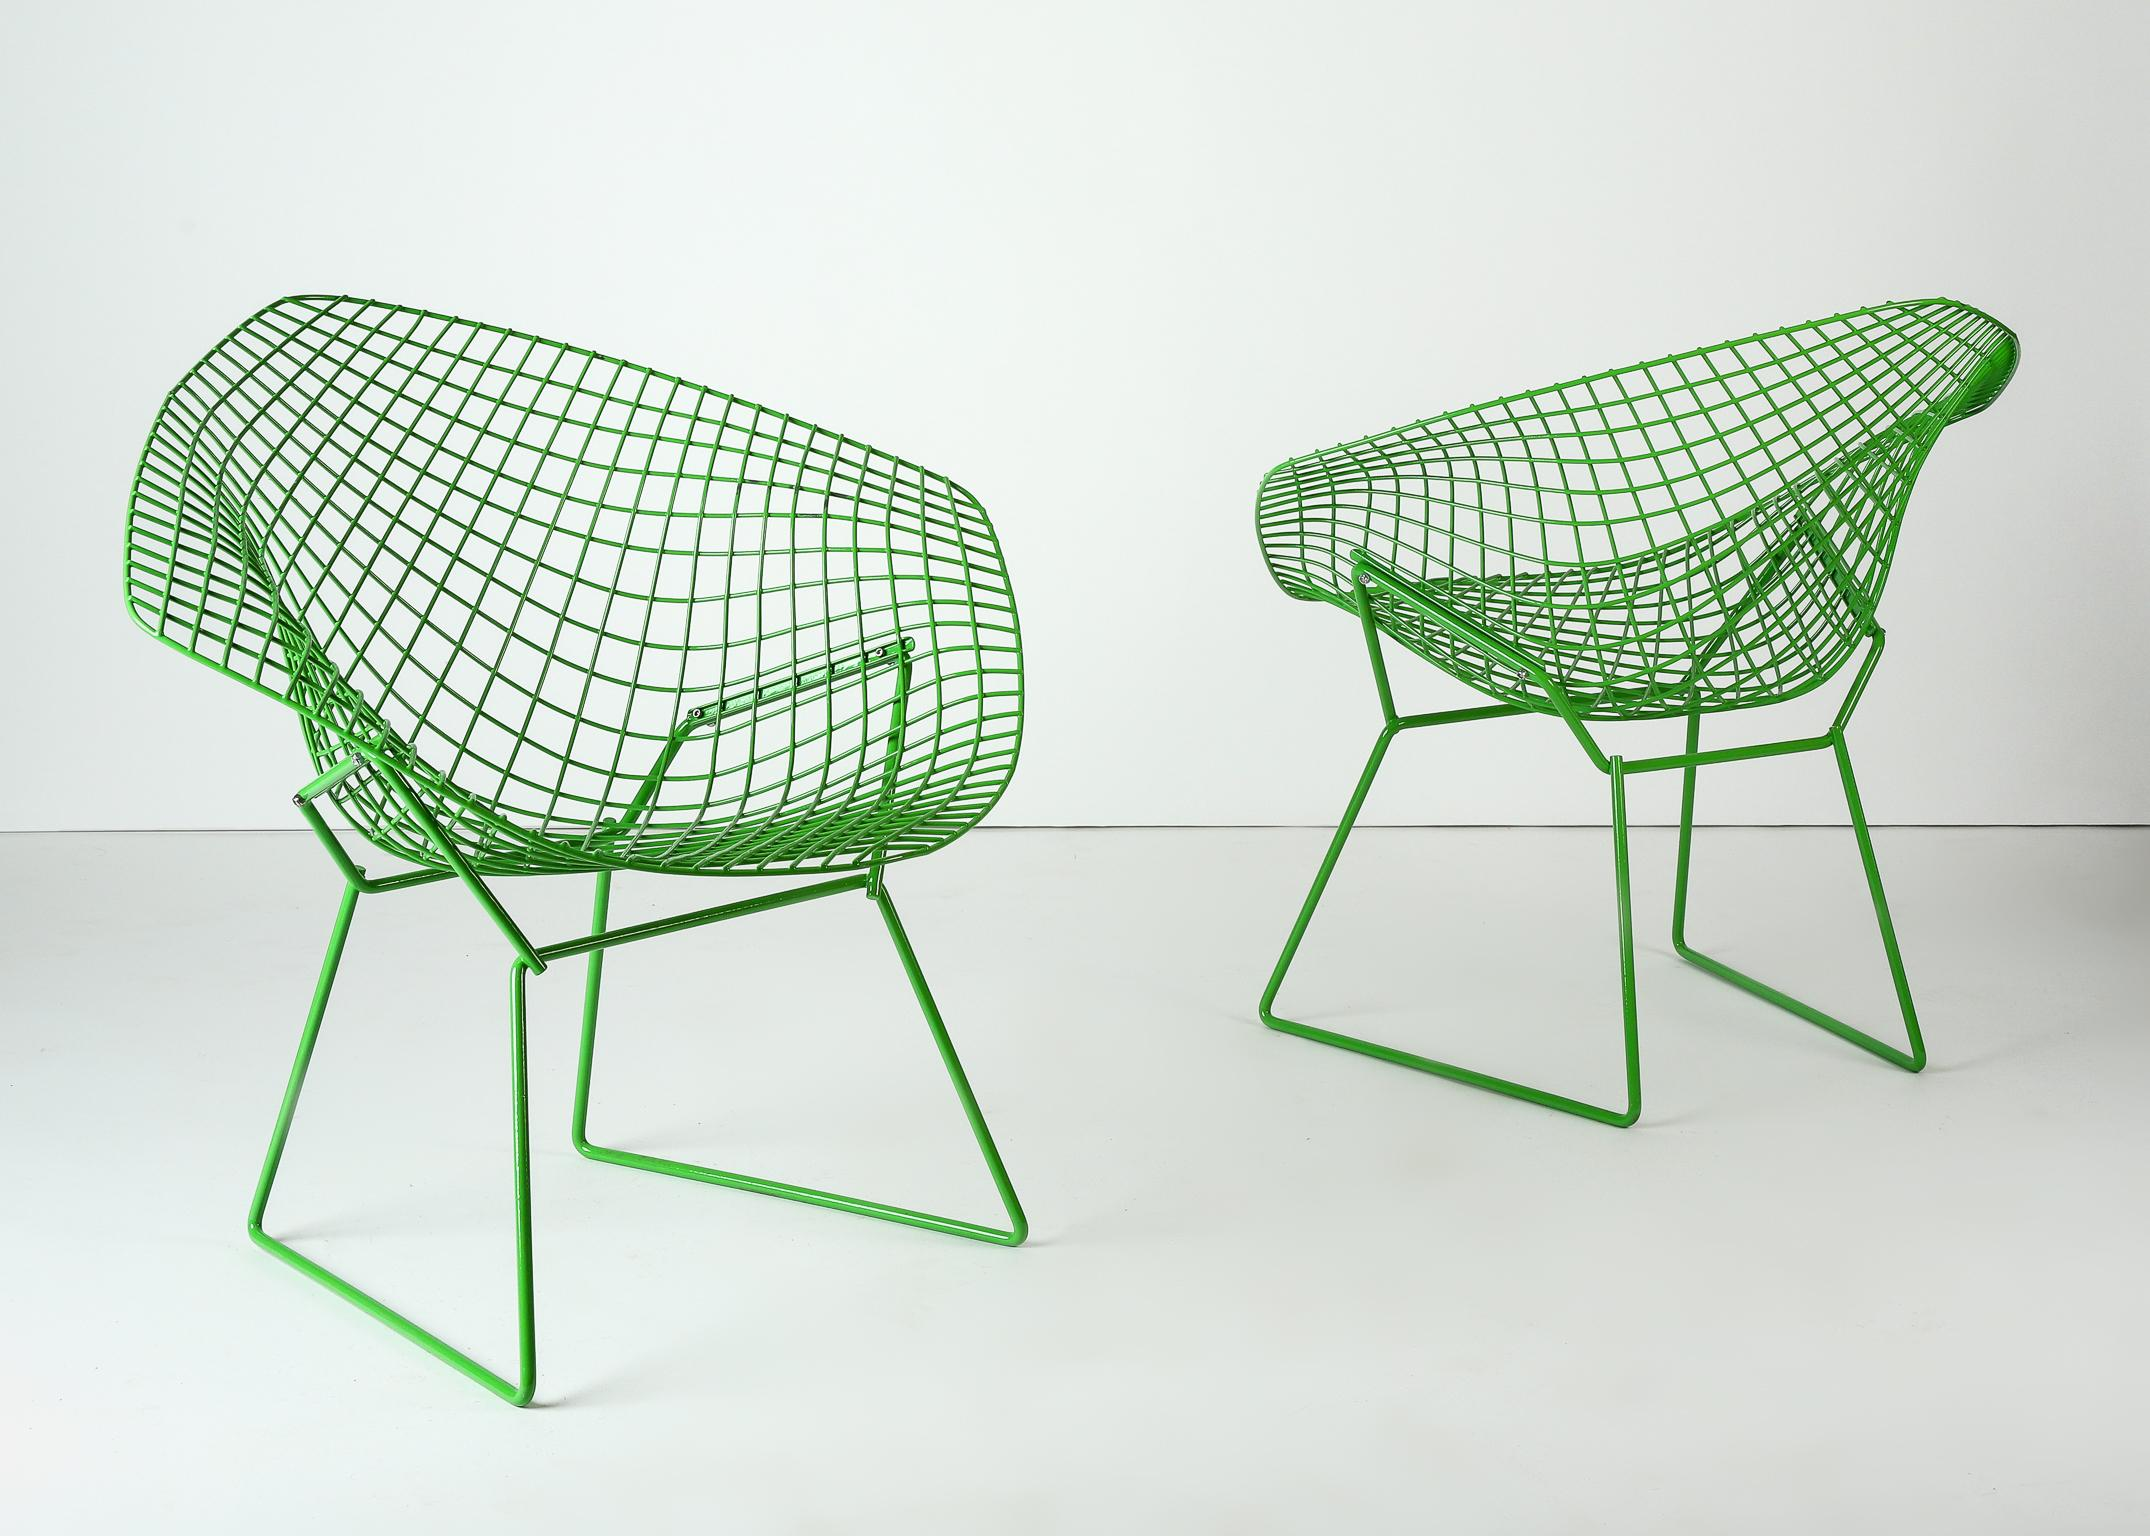 Custom powder coated green harry bertoia diamond chairs for knoll for sale at 1stdibs